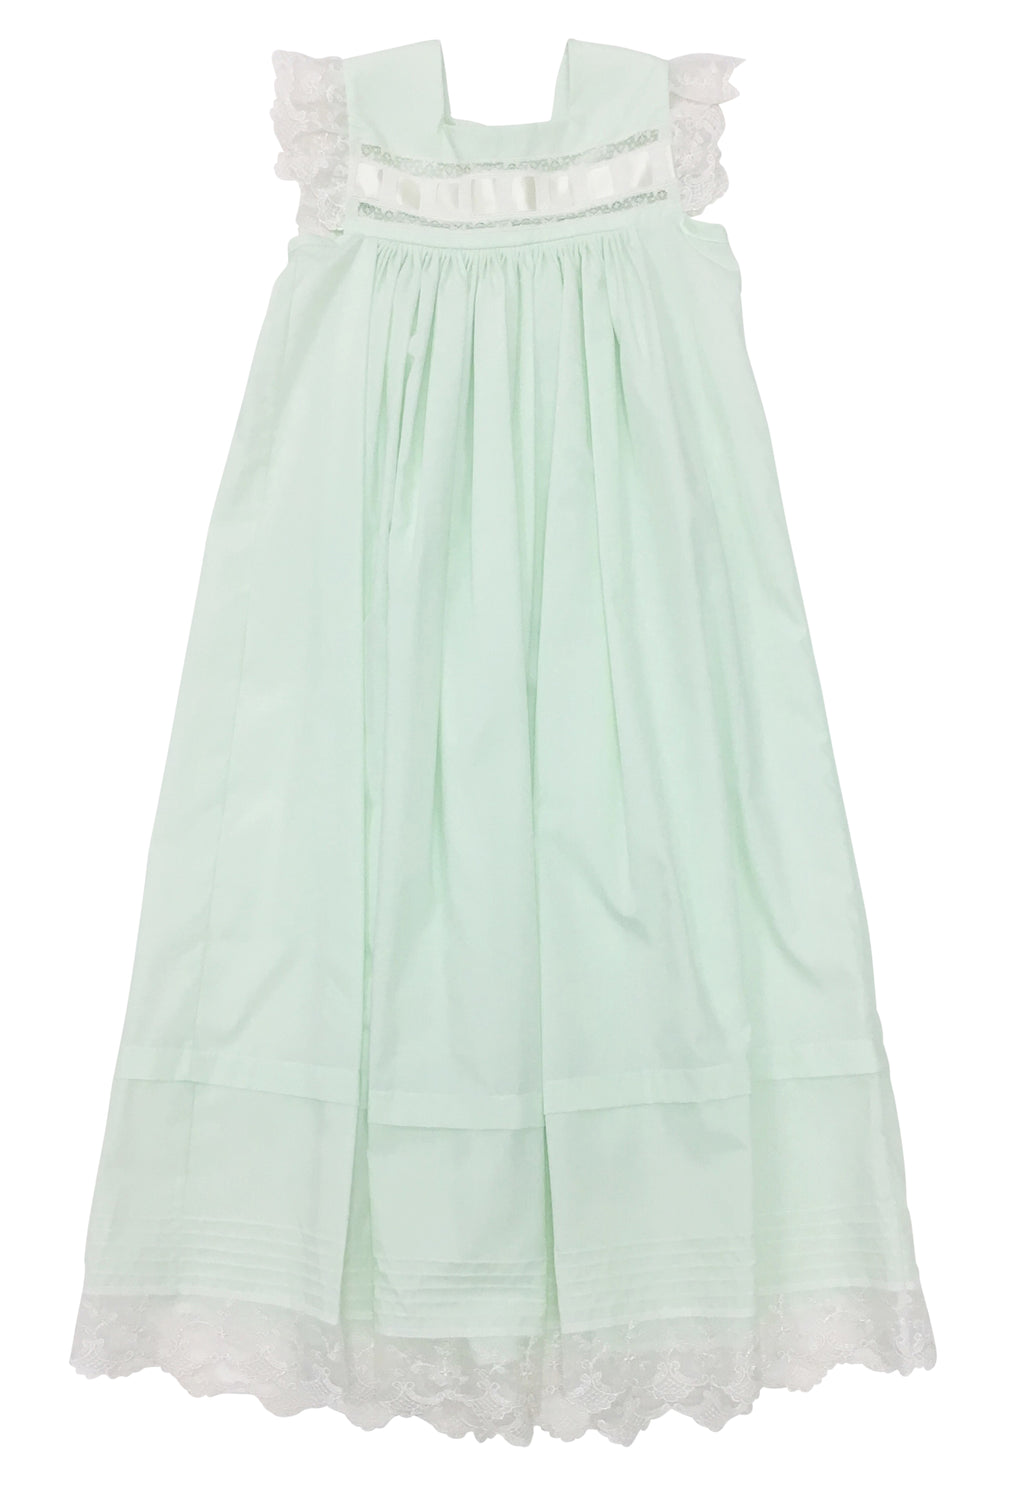 Heirloom Sleeveless Dress Mint with Ecru - Born Childrens Boutique